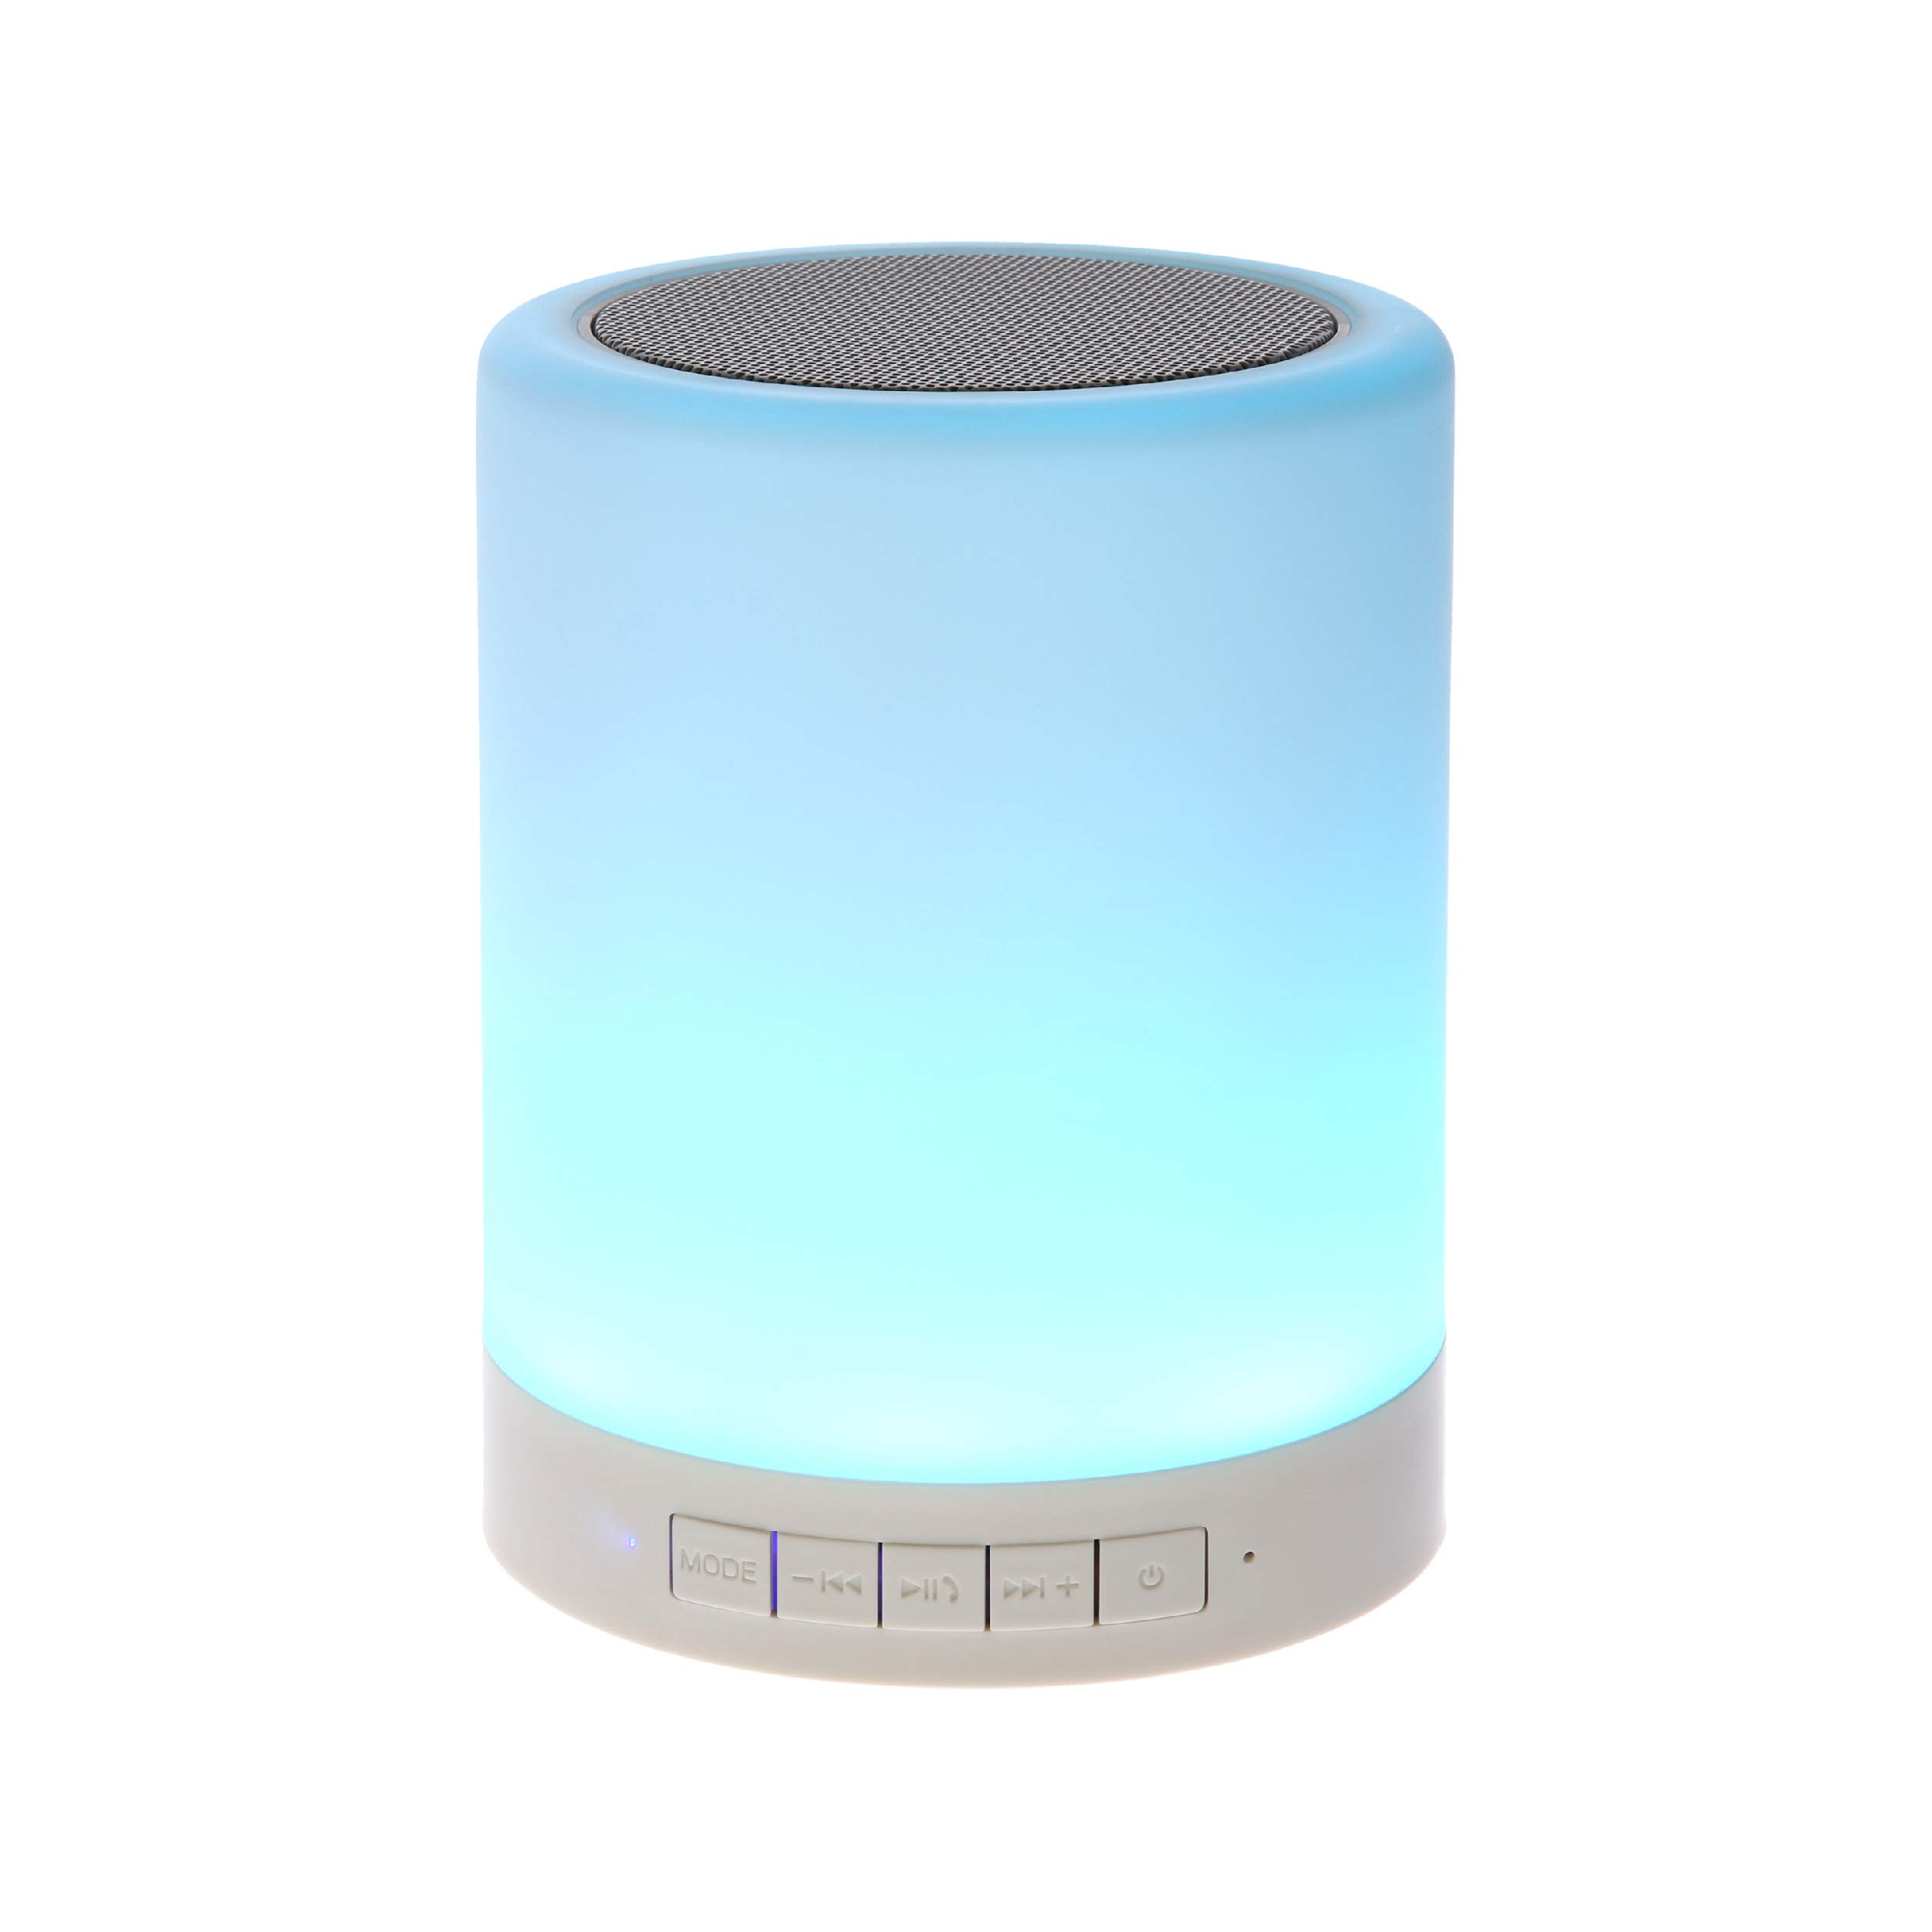 SHAVA Night Light Bluetooth Speaker, Portable Wireless Bluetooth Speakers, Touch Control, Color LED Speaker, Bedside Table Light, Speakerphone/TF Card/AUX-in Supported (White), 7 Price: $19.95